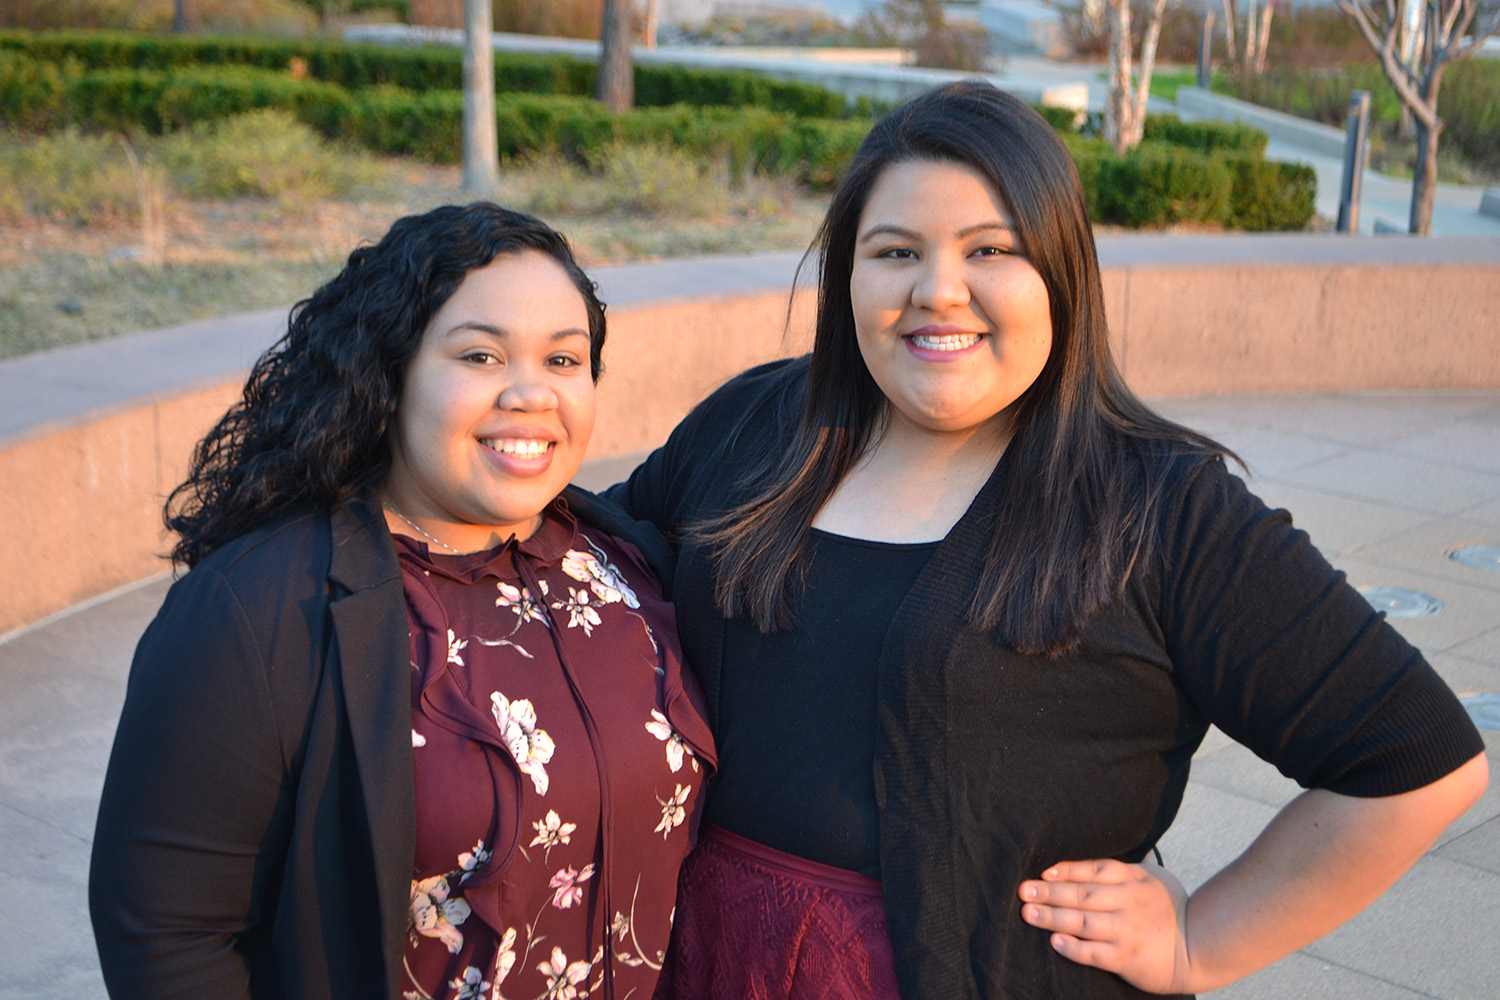 Muscogee (Creek) Nation citizens named 2017 Native American Congressional Interns